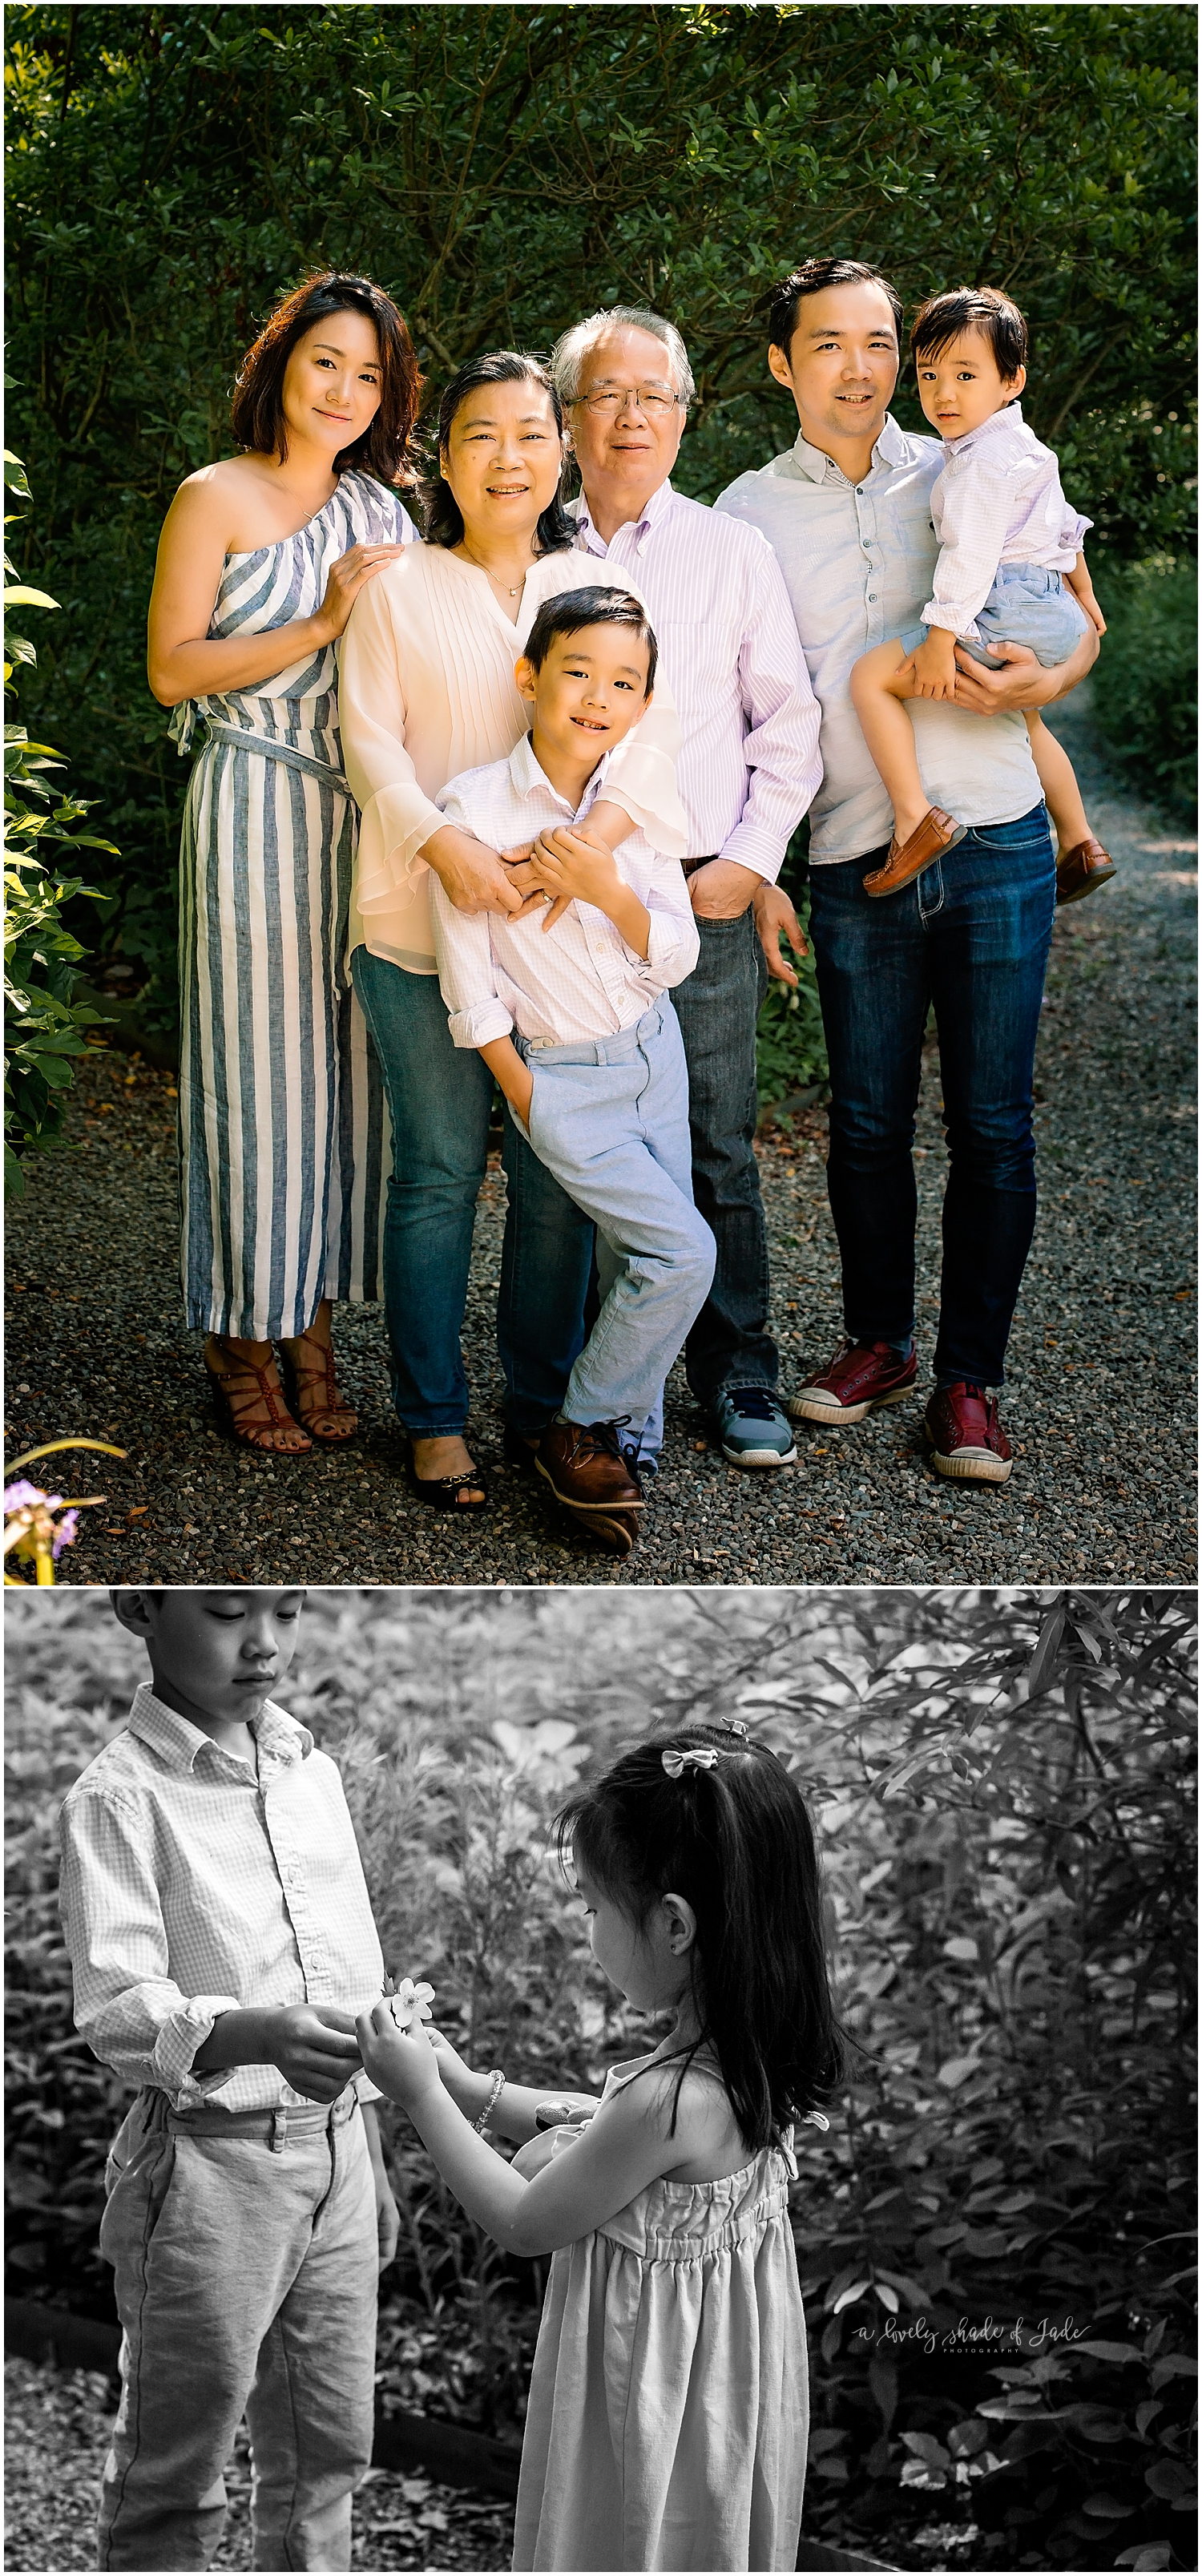 Fun_Extended_Family_Session_Morristown_NJ_Photography_0017.jpg